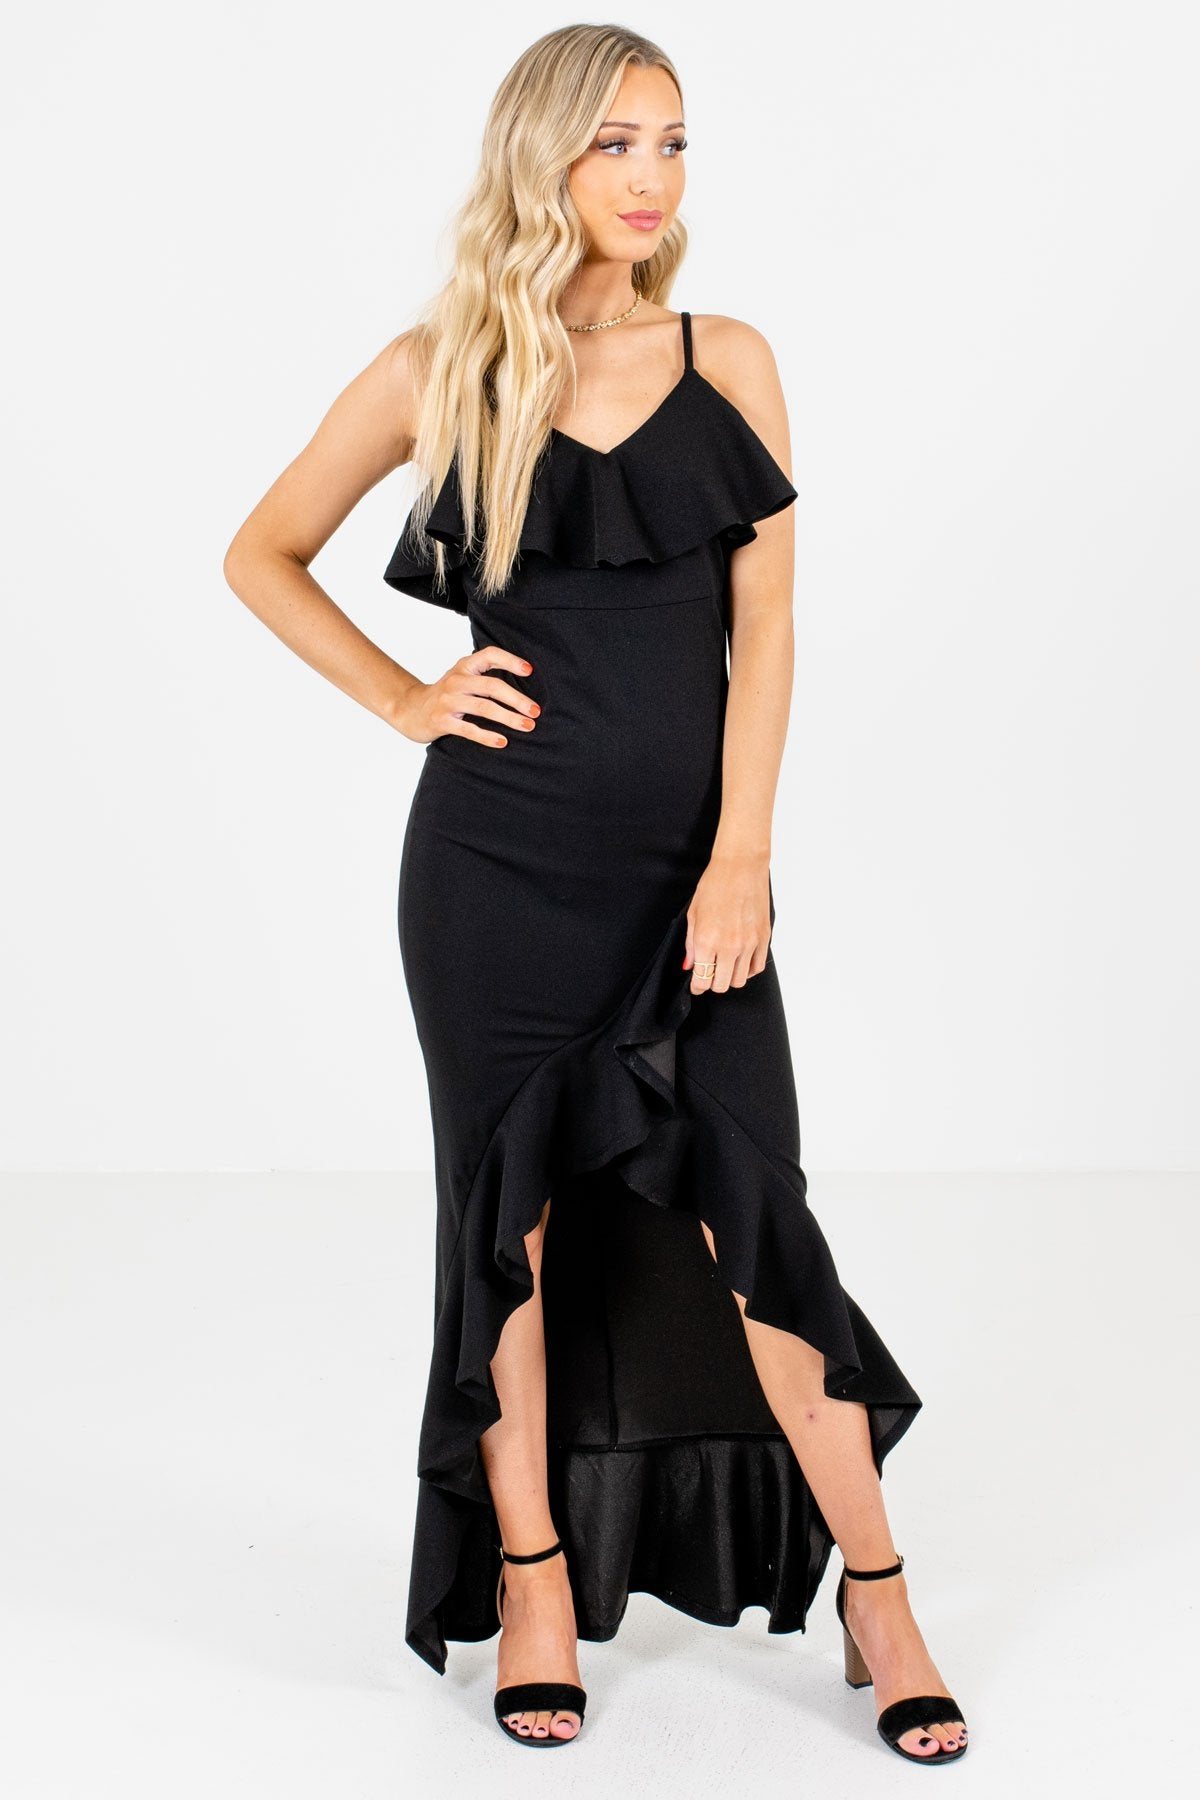 Black High Low Maxi Ruffle Dresses with Spaghetti Straps and Zipper Back